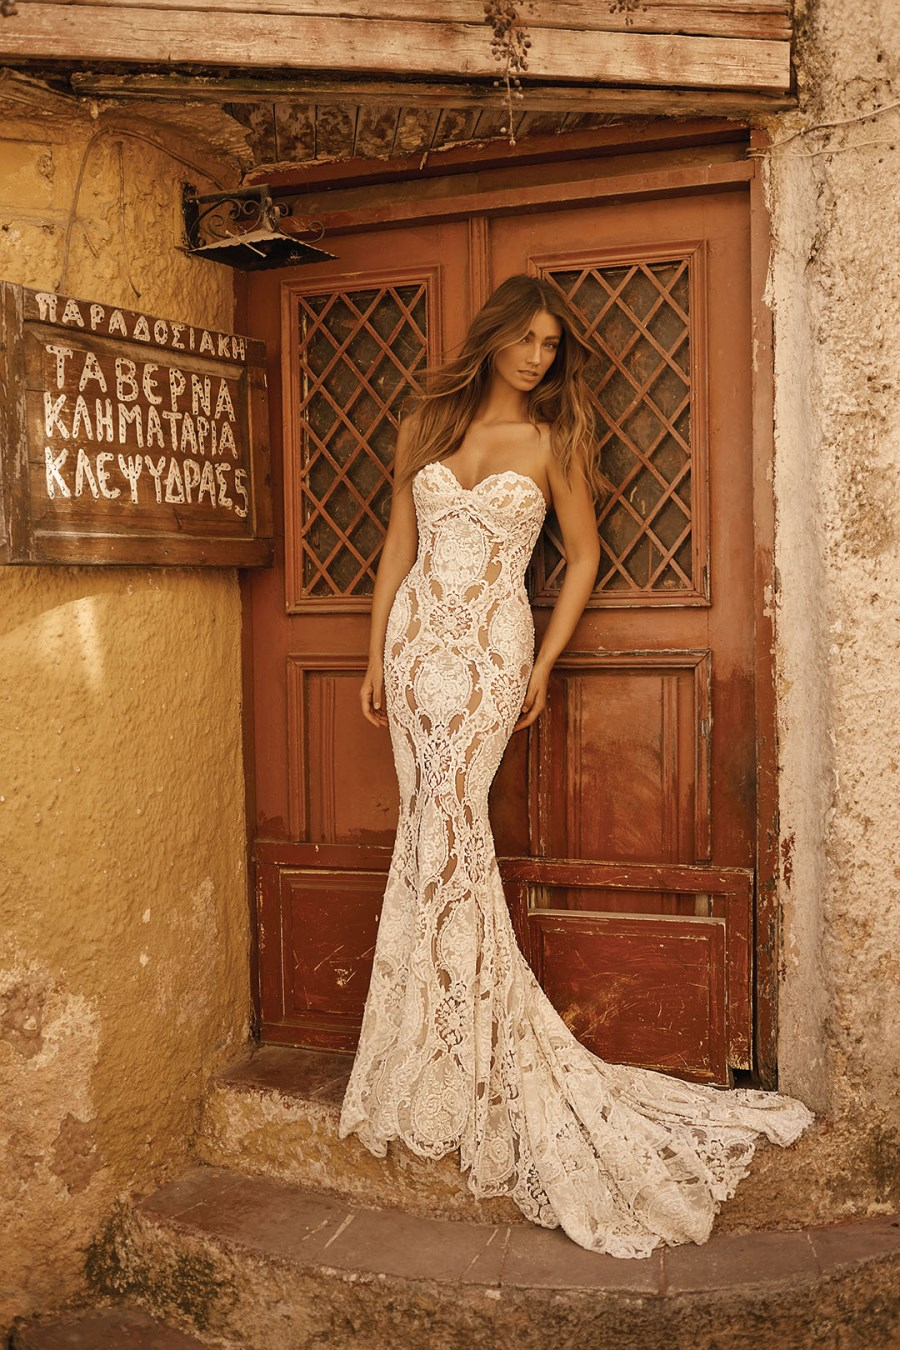 berta-wedding-dress-2019-1 (19)_1